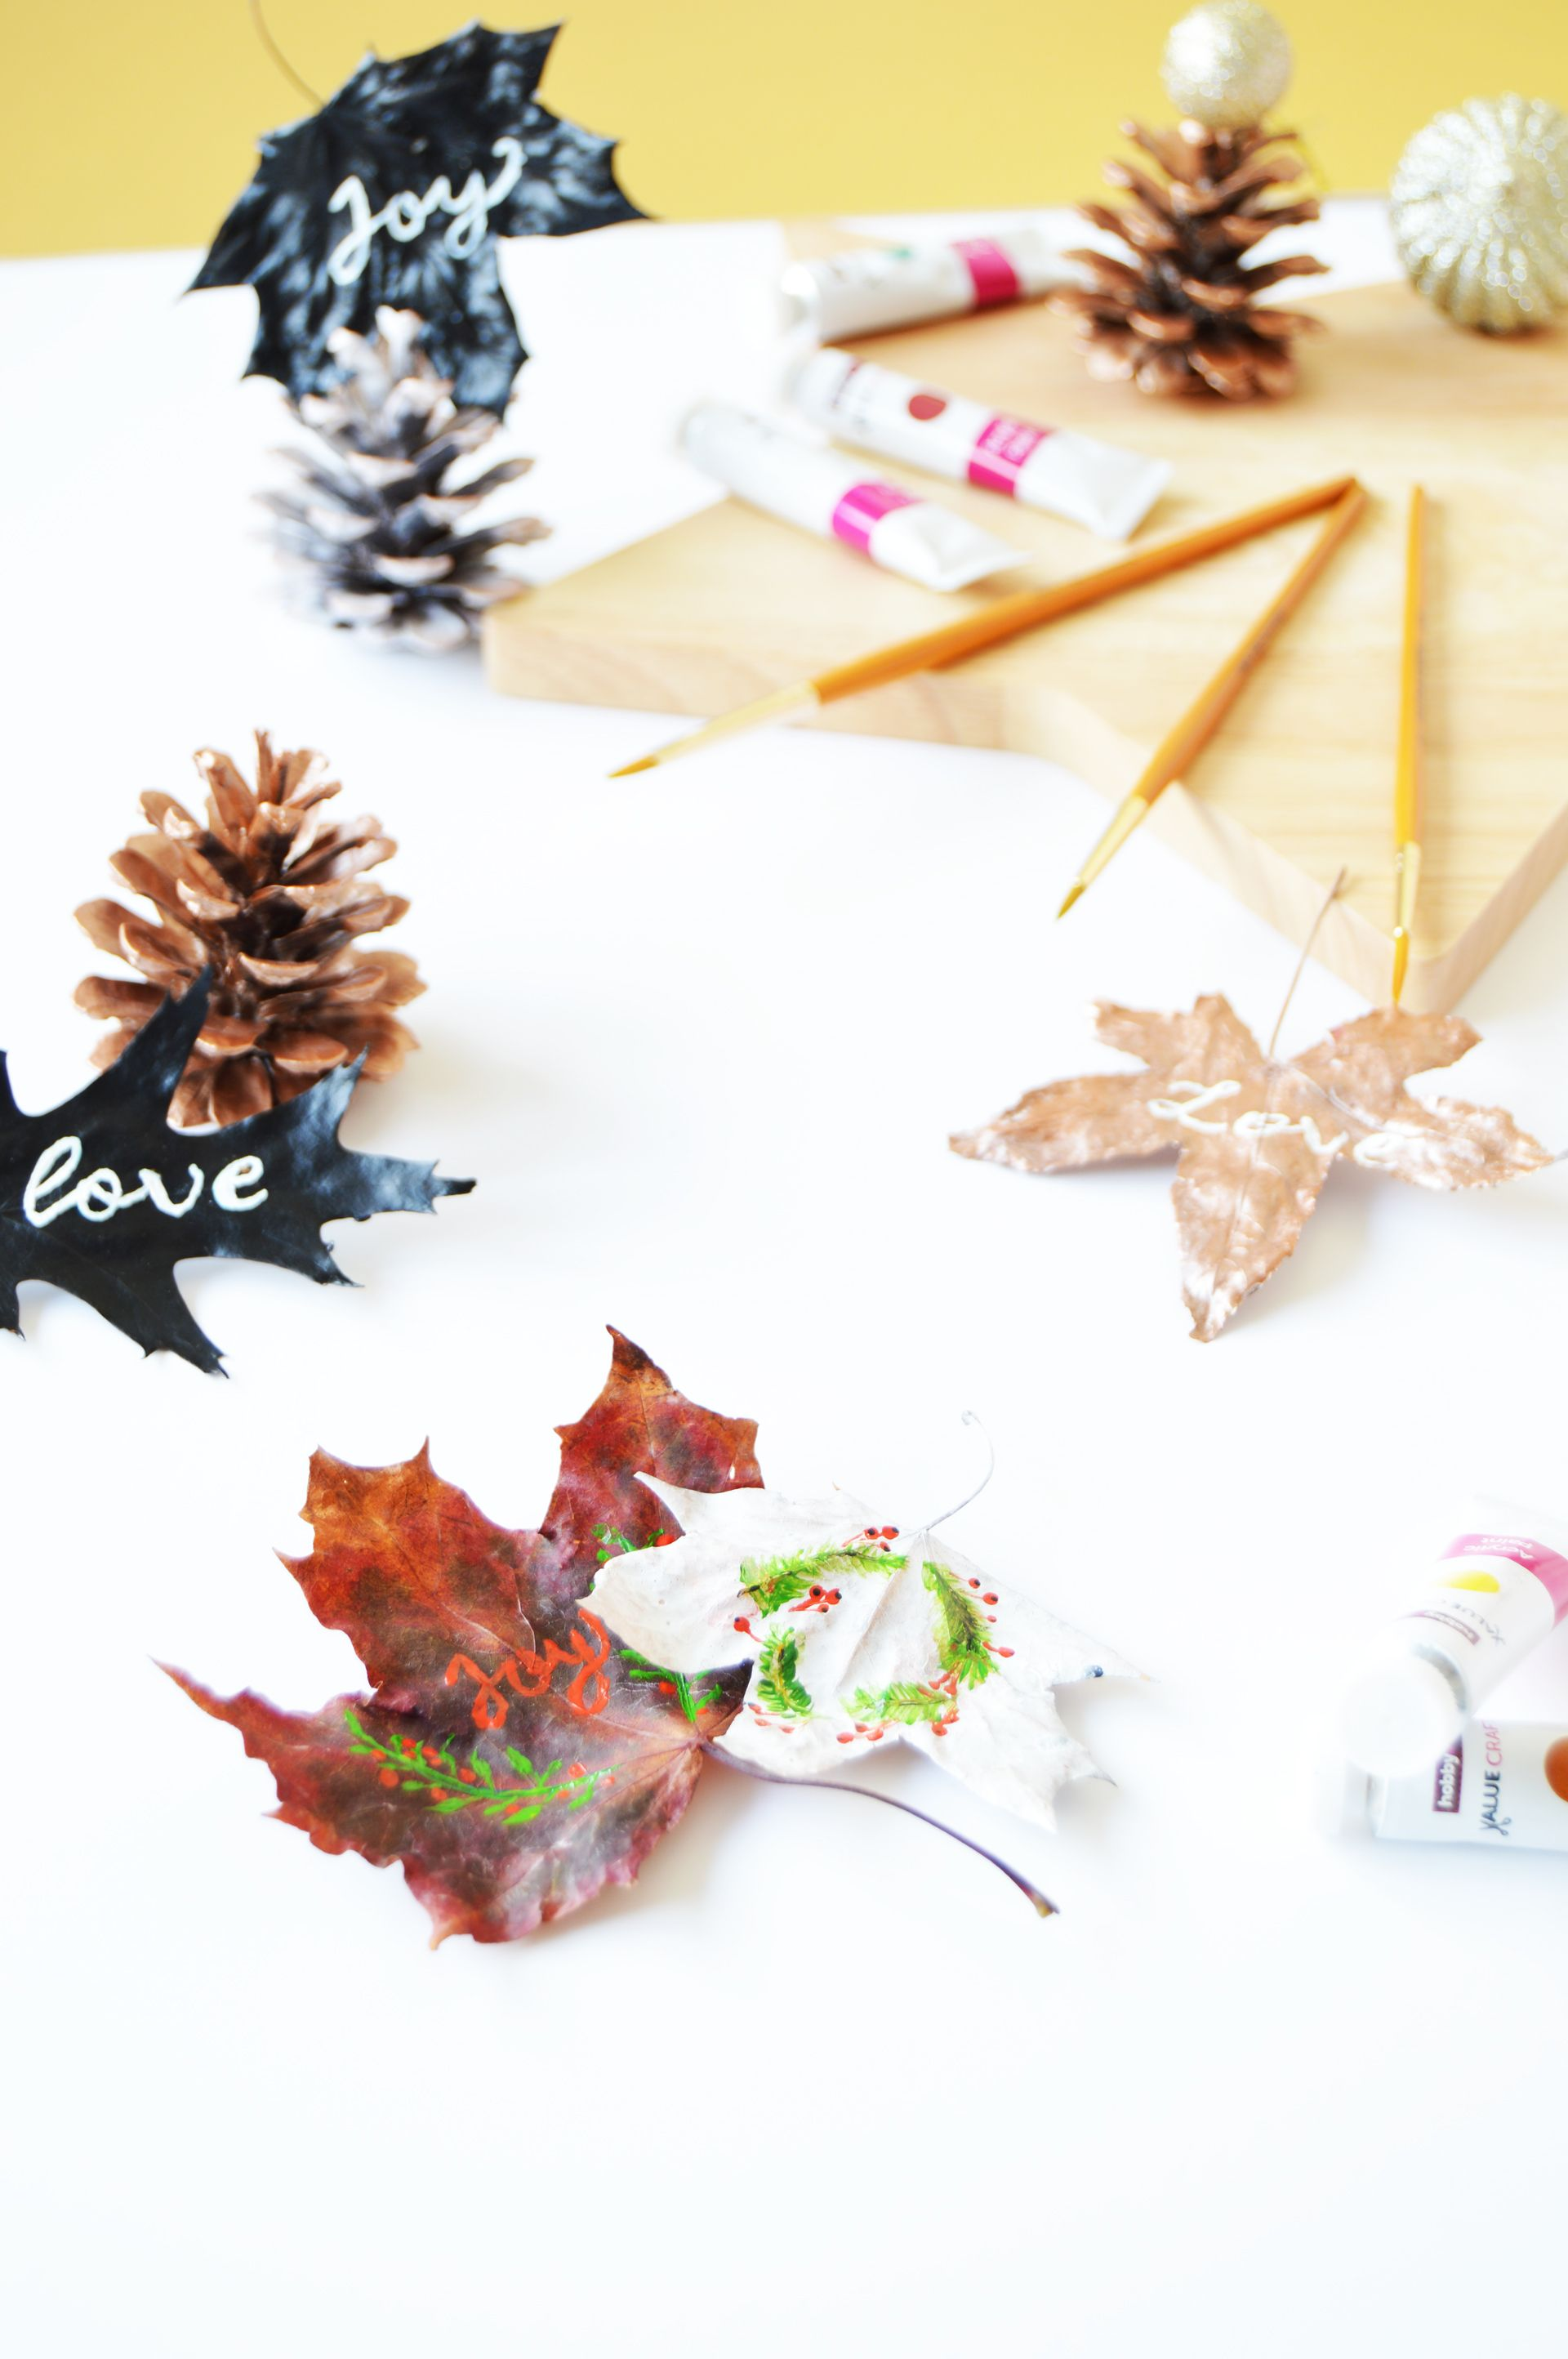 Why don't you make your gifts more personalised this year? Instead of using store bought gift tags, how about making your own gift tags with leaves? DIY Leaf gift tags are easy to make and it will make your gifts stand out.